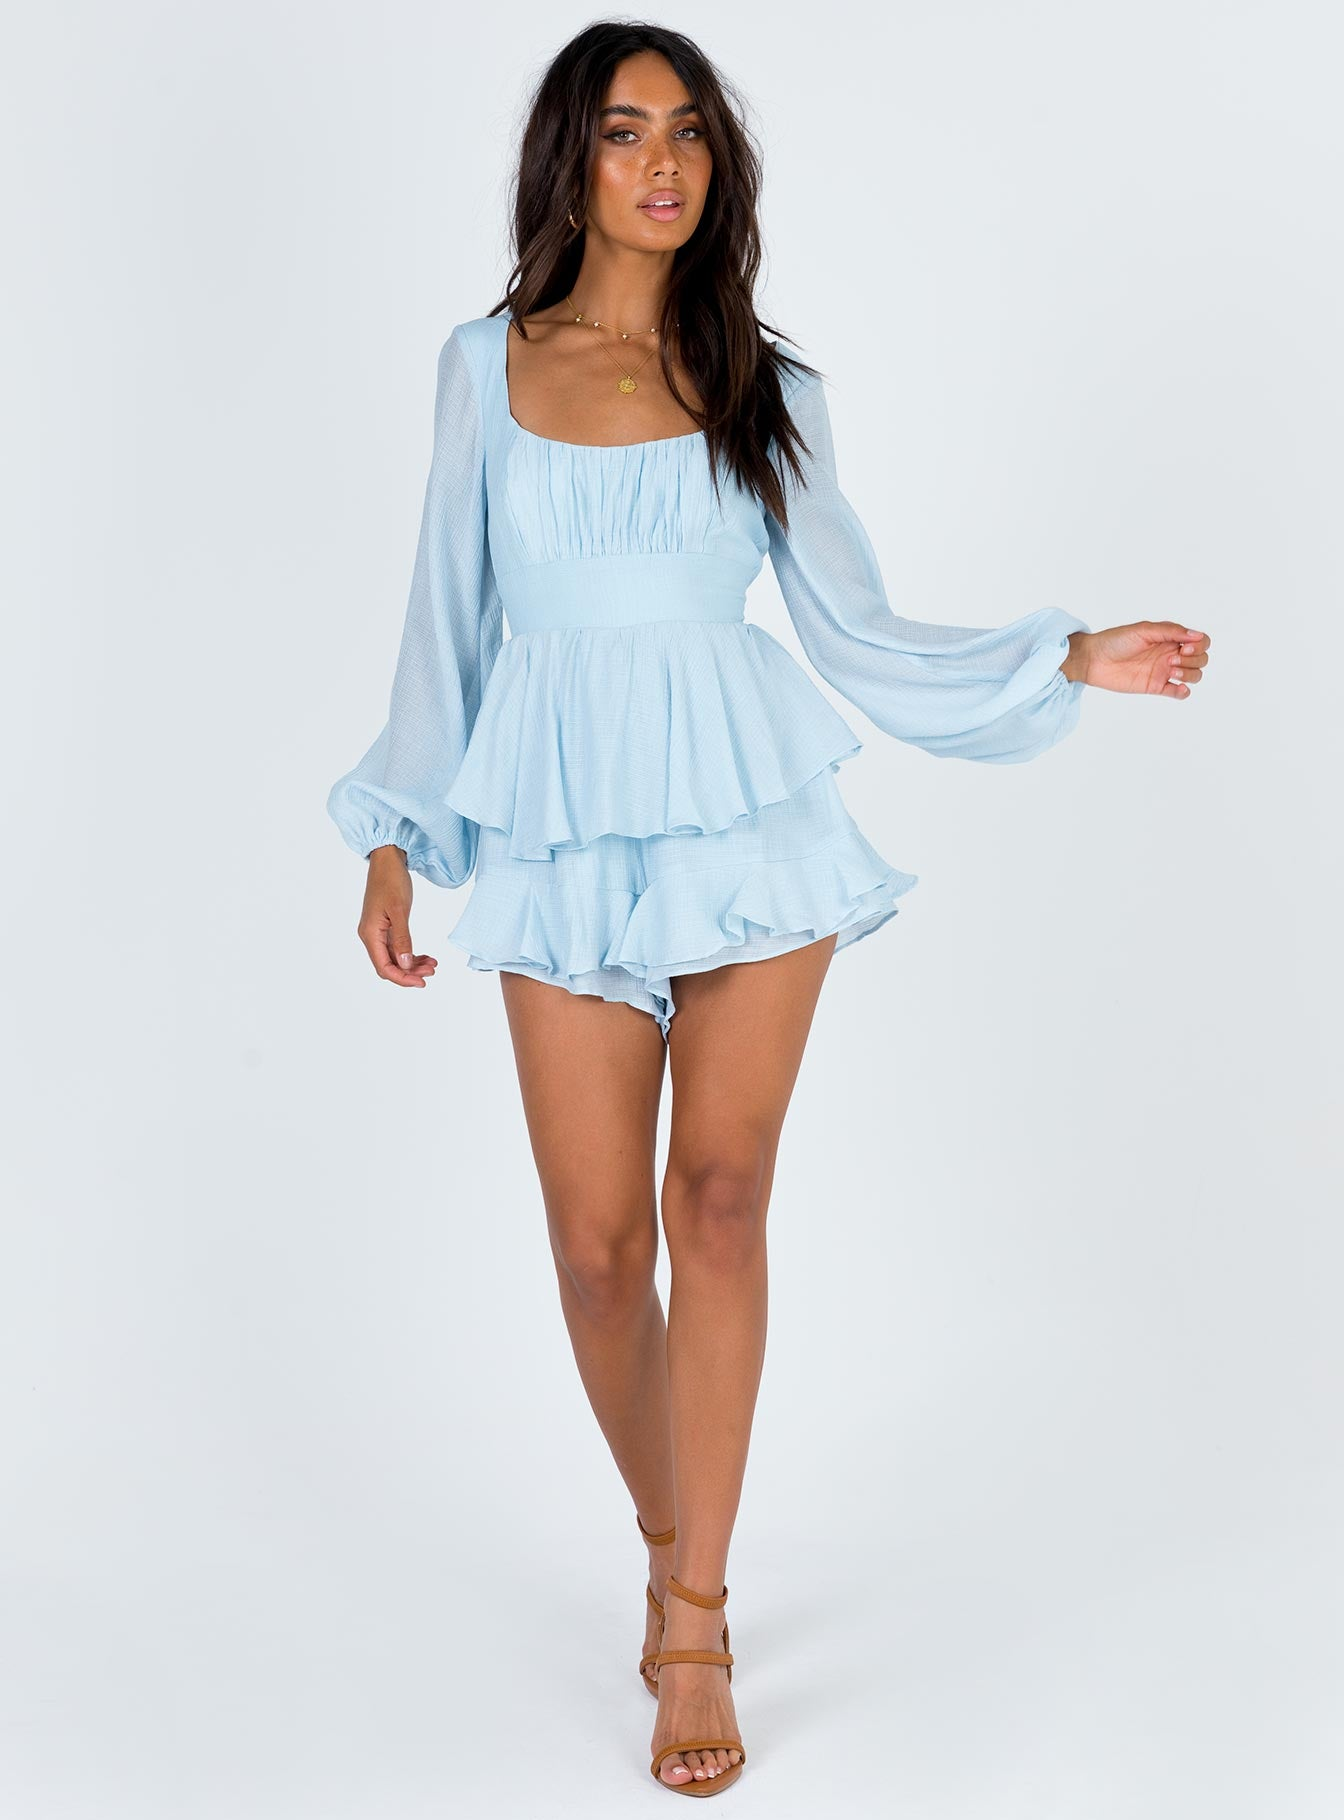 The Sundara Playsuit